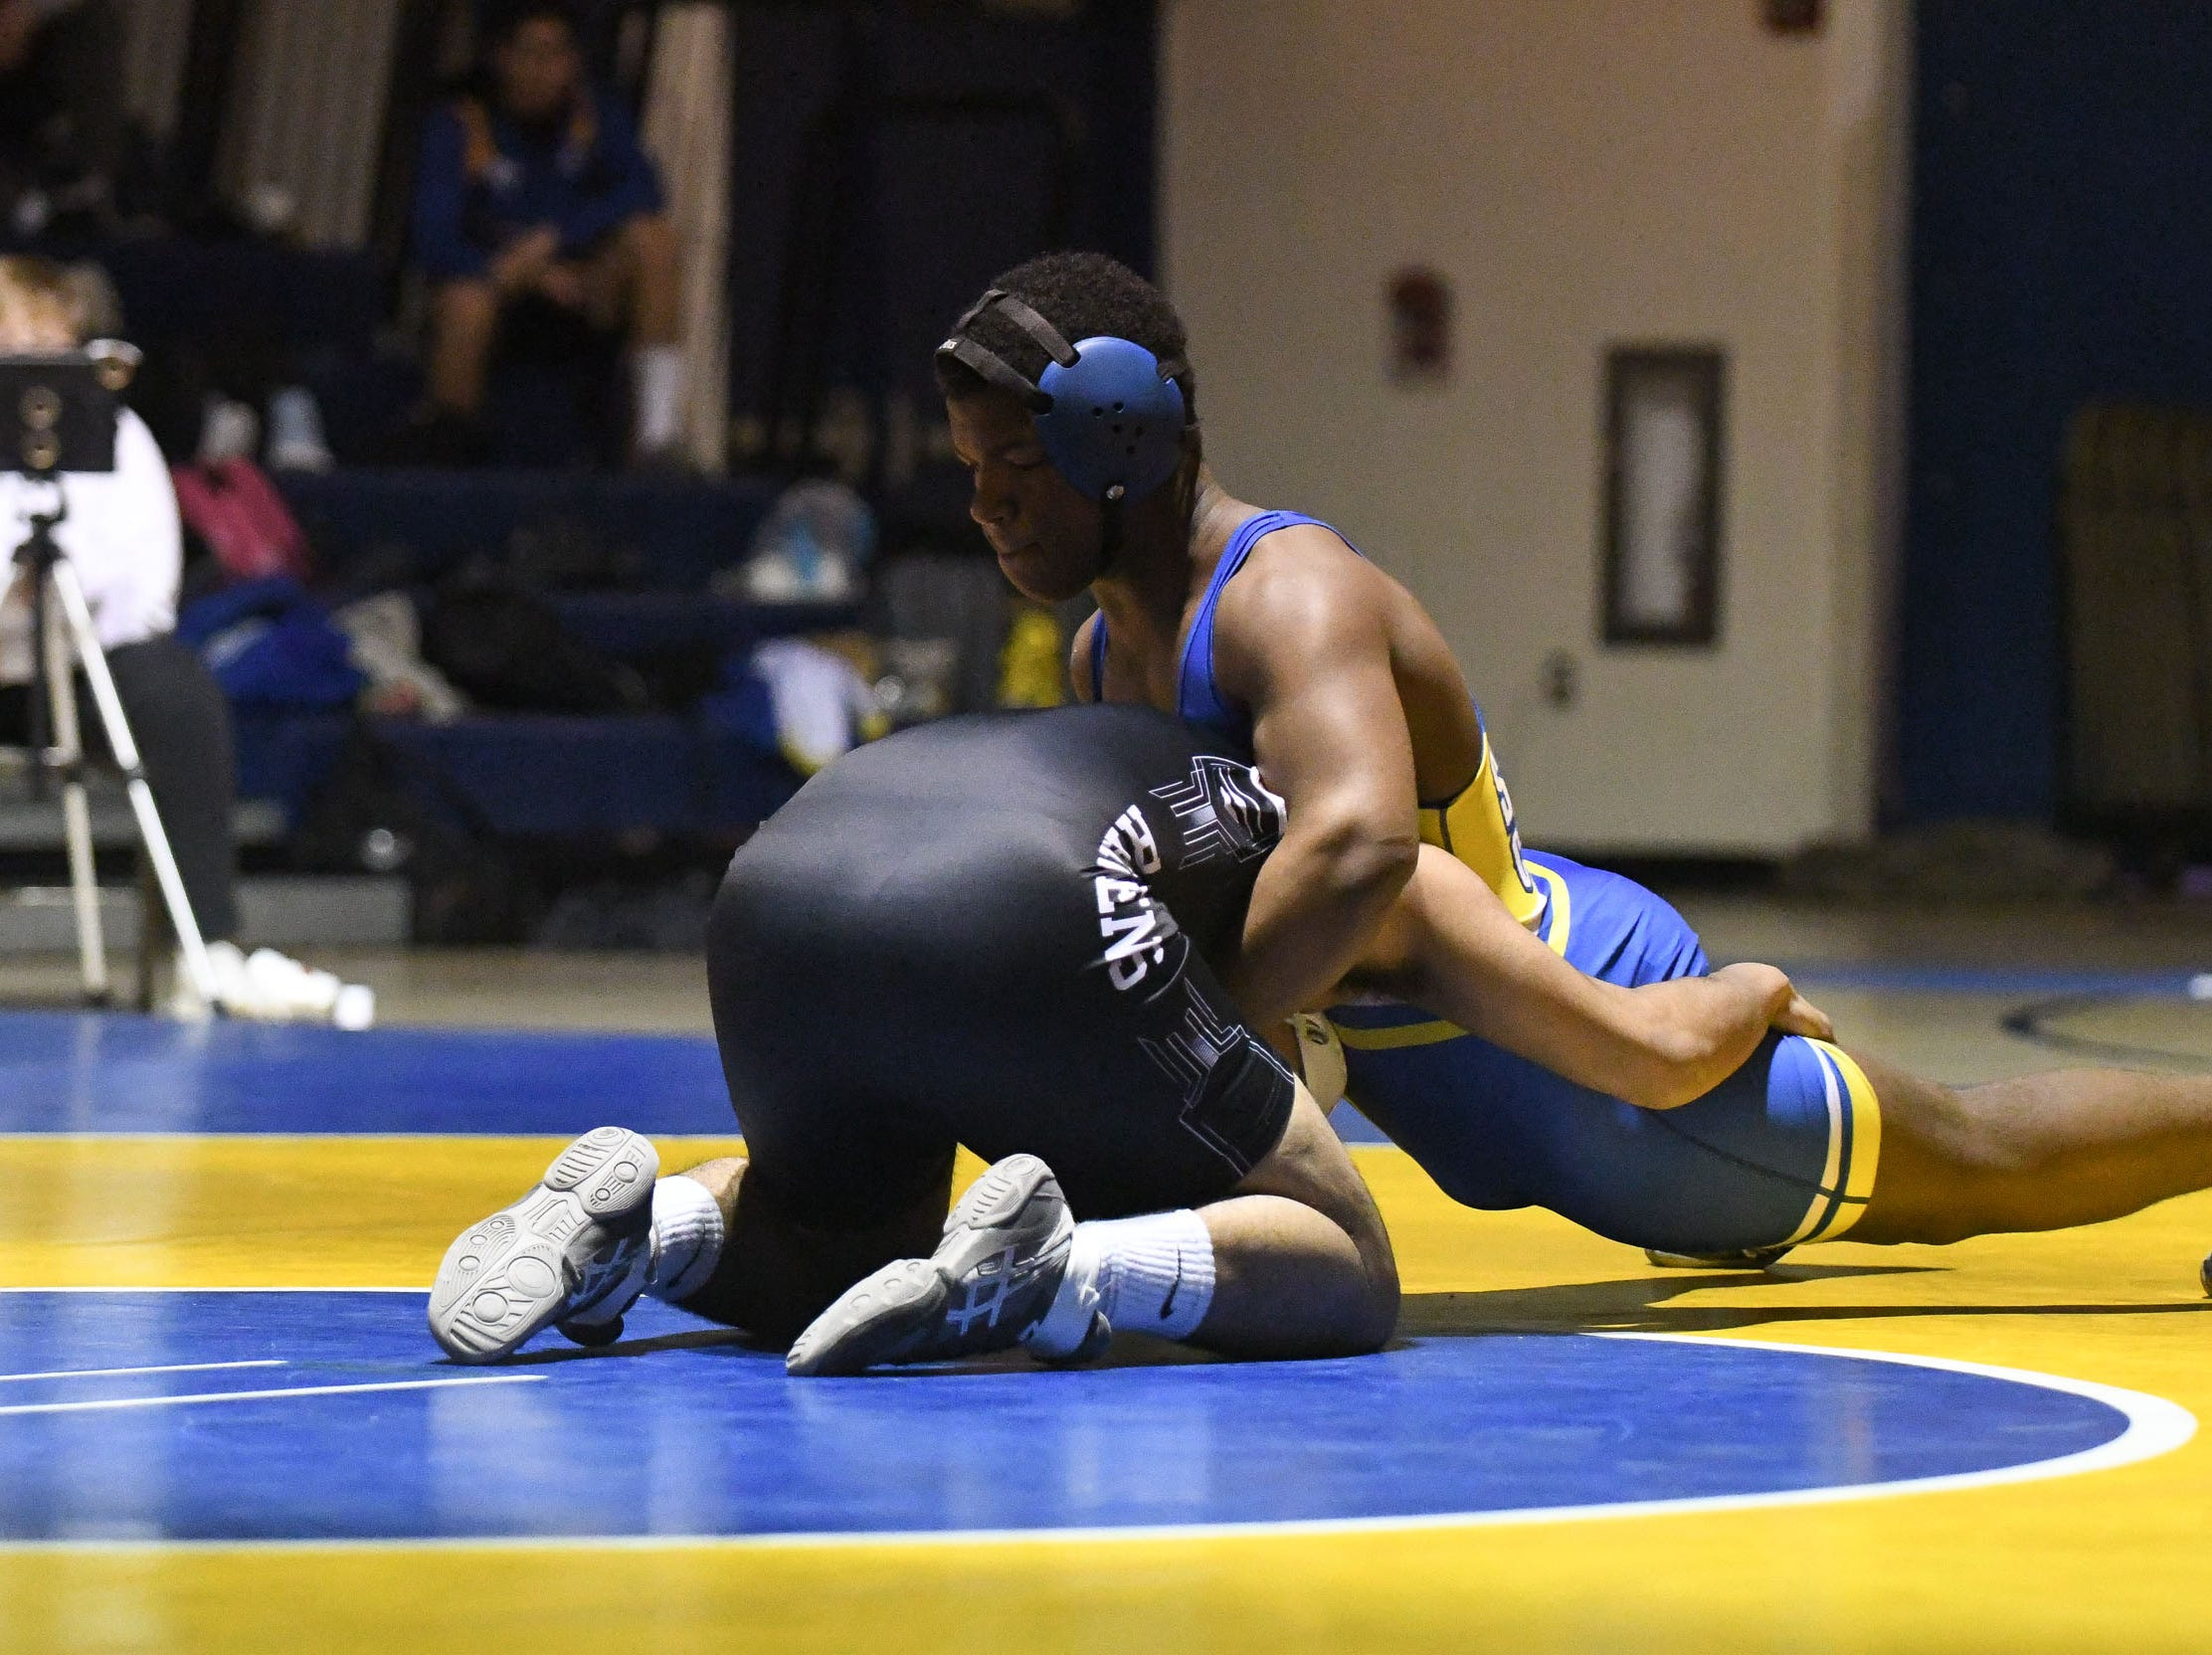 Sussex Central's Javontai Satchell-Harmon battled Sussex Tech's Daniel Alvarez during the match up at 182lbs on Wednesday, Feb. 6, 2019.